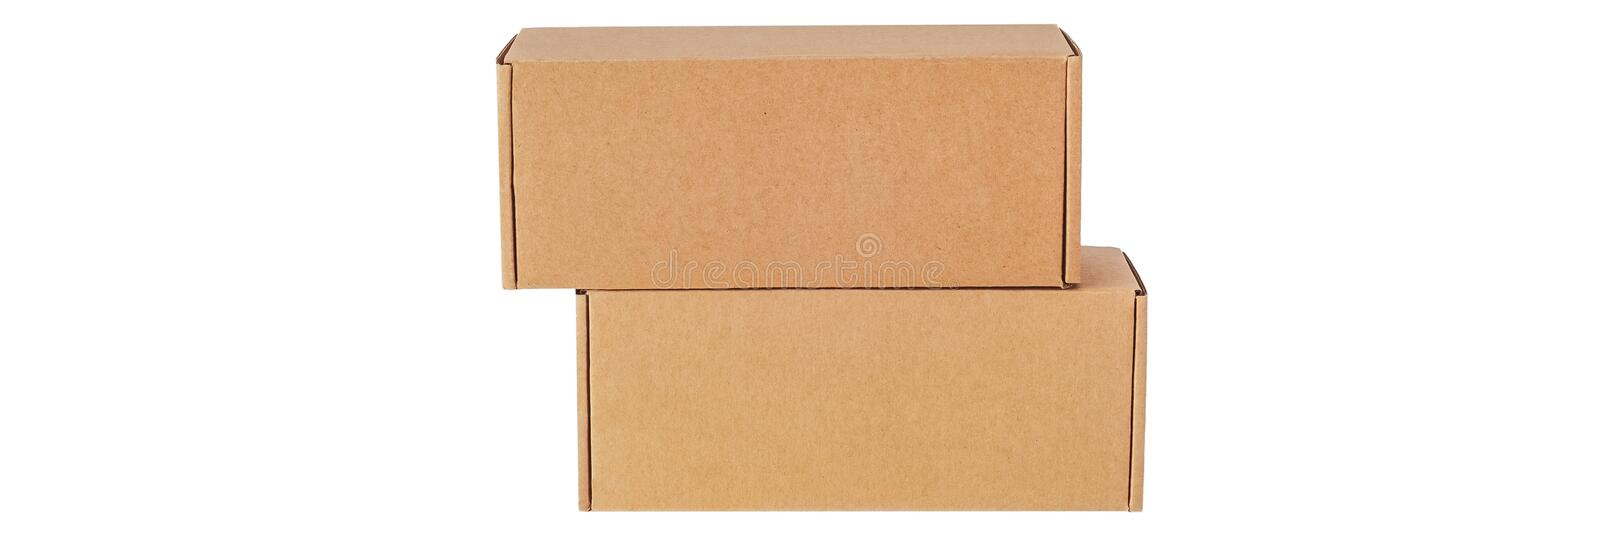 Cardboard boxes for goods on a white background. Different size. on white background.  stock images